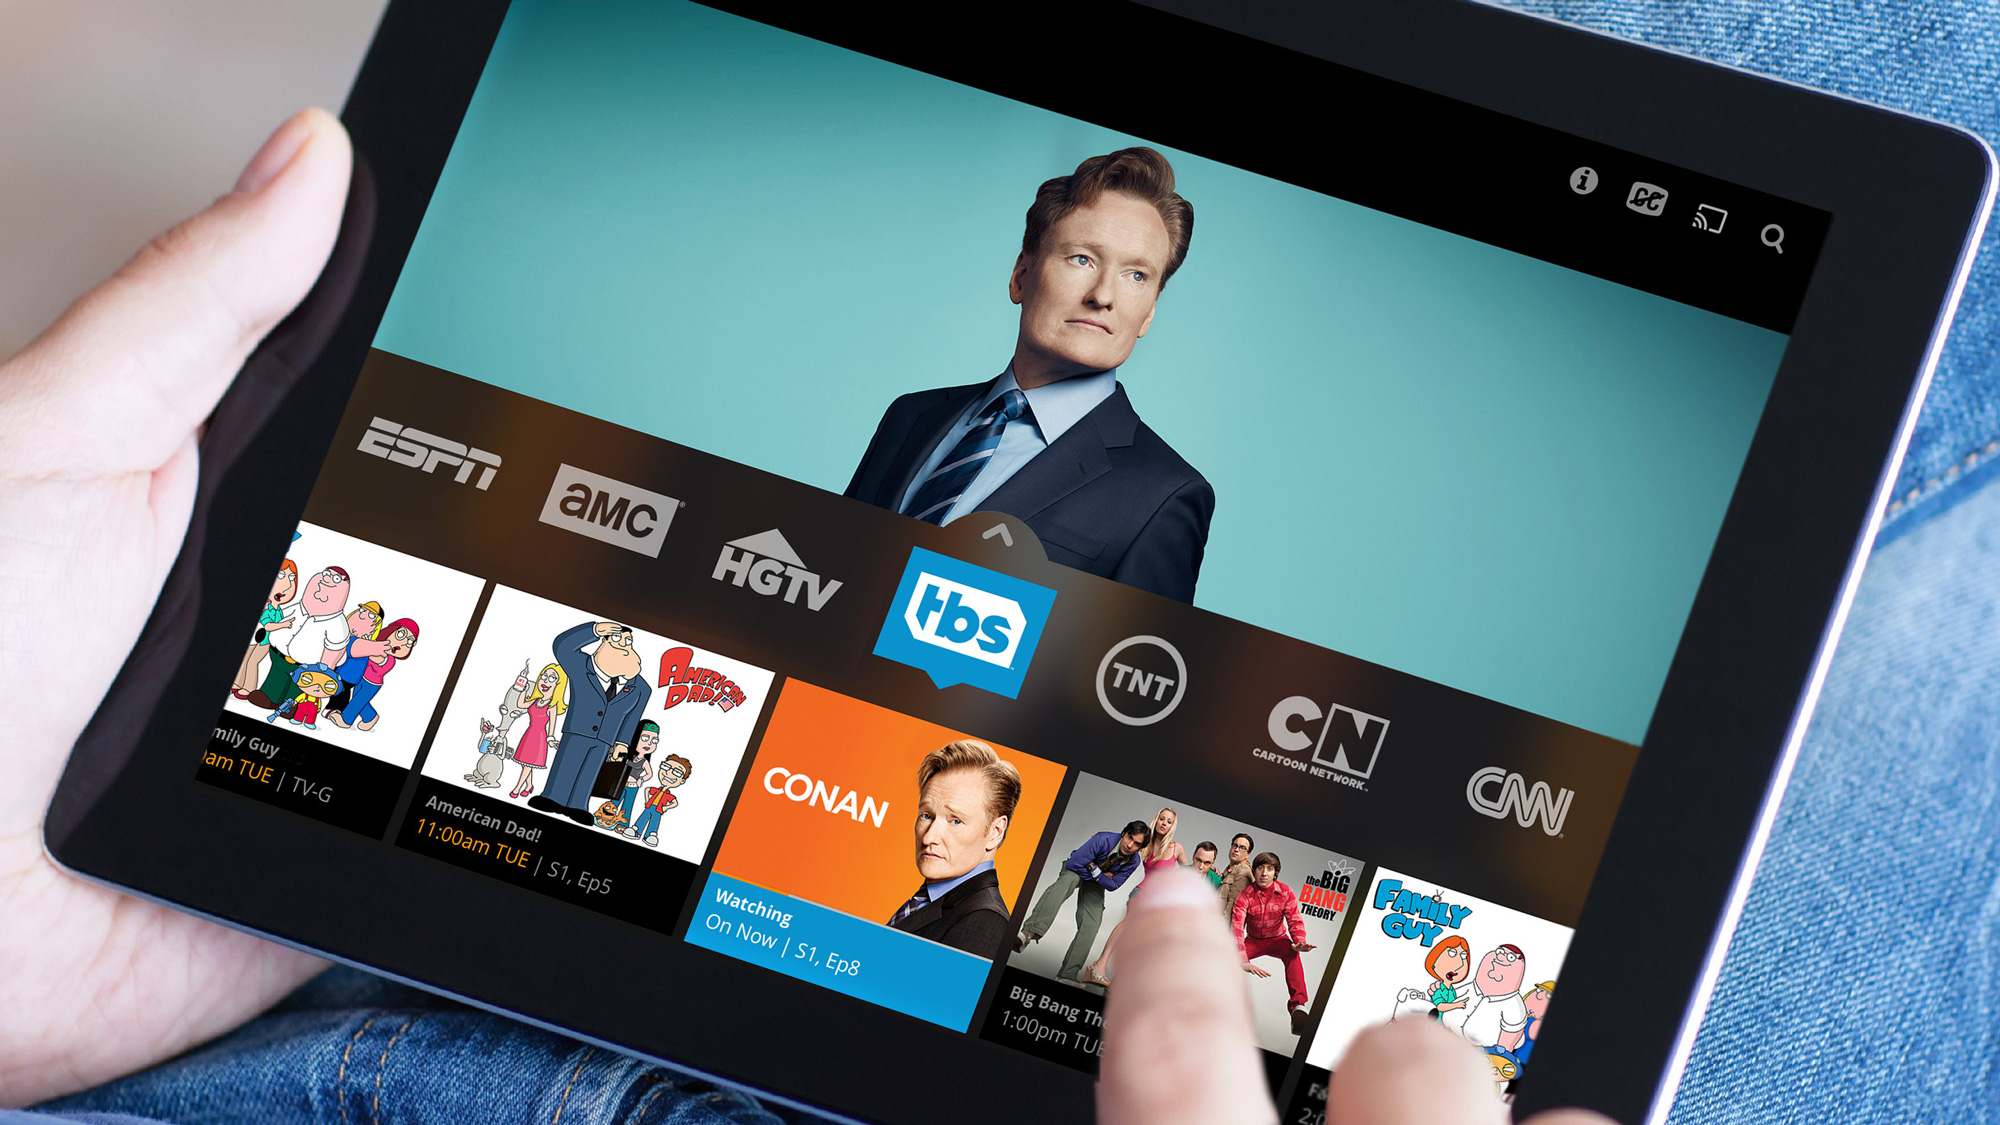 Best streaming service: Sling